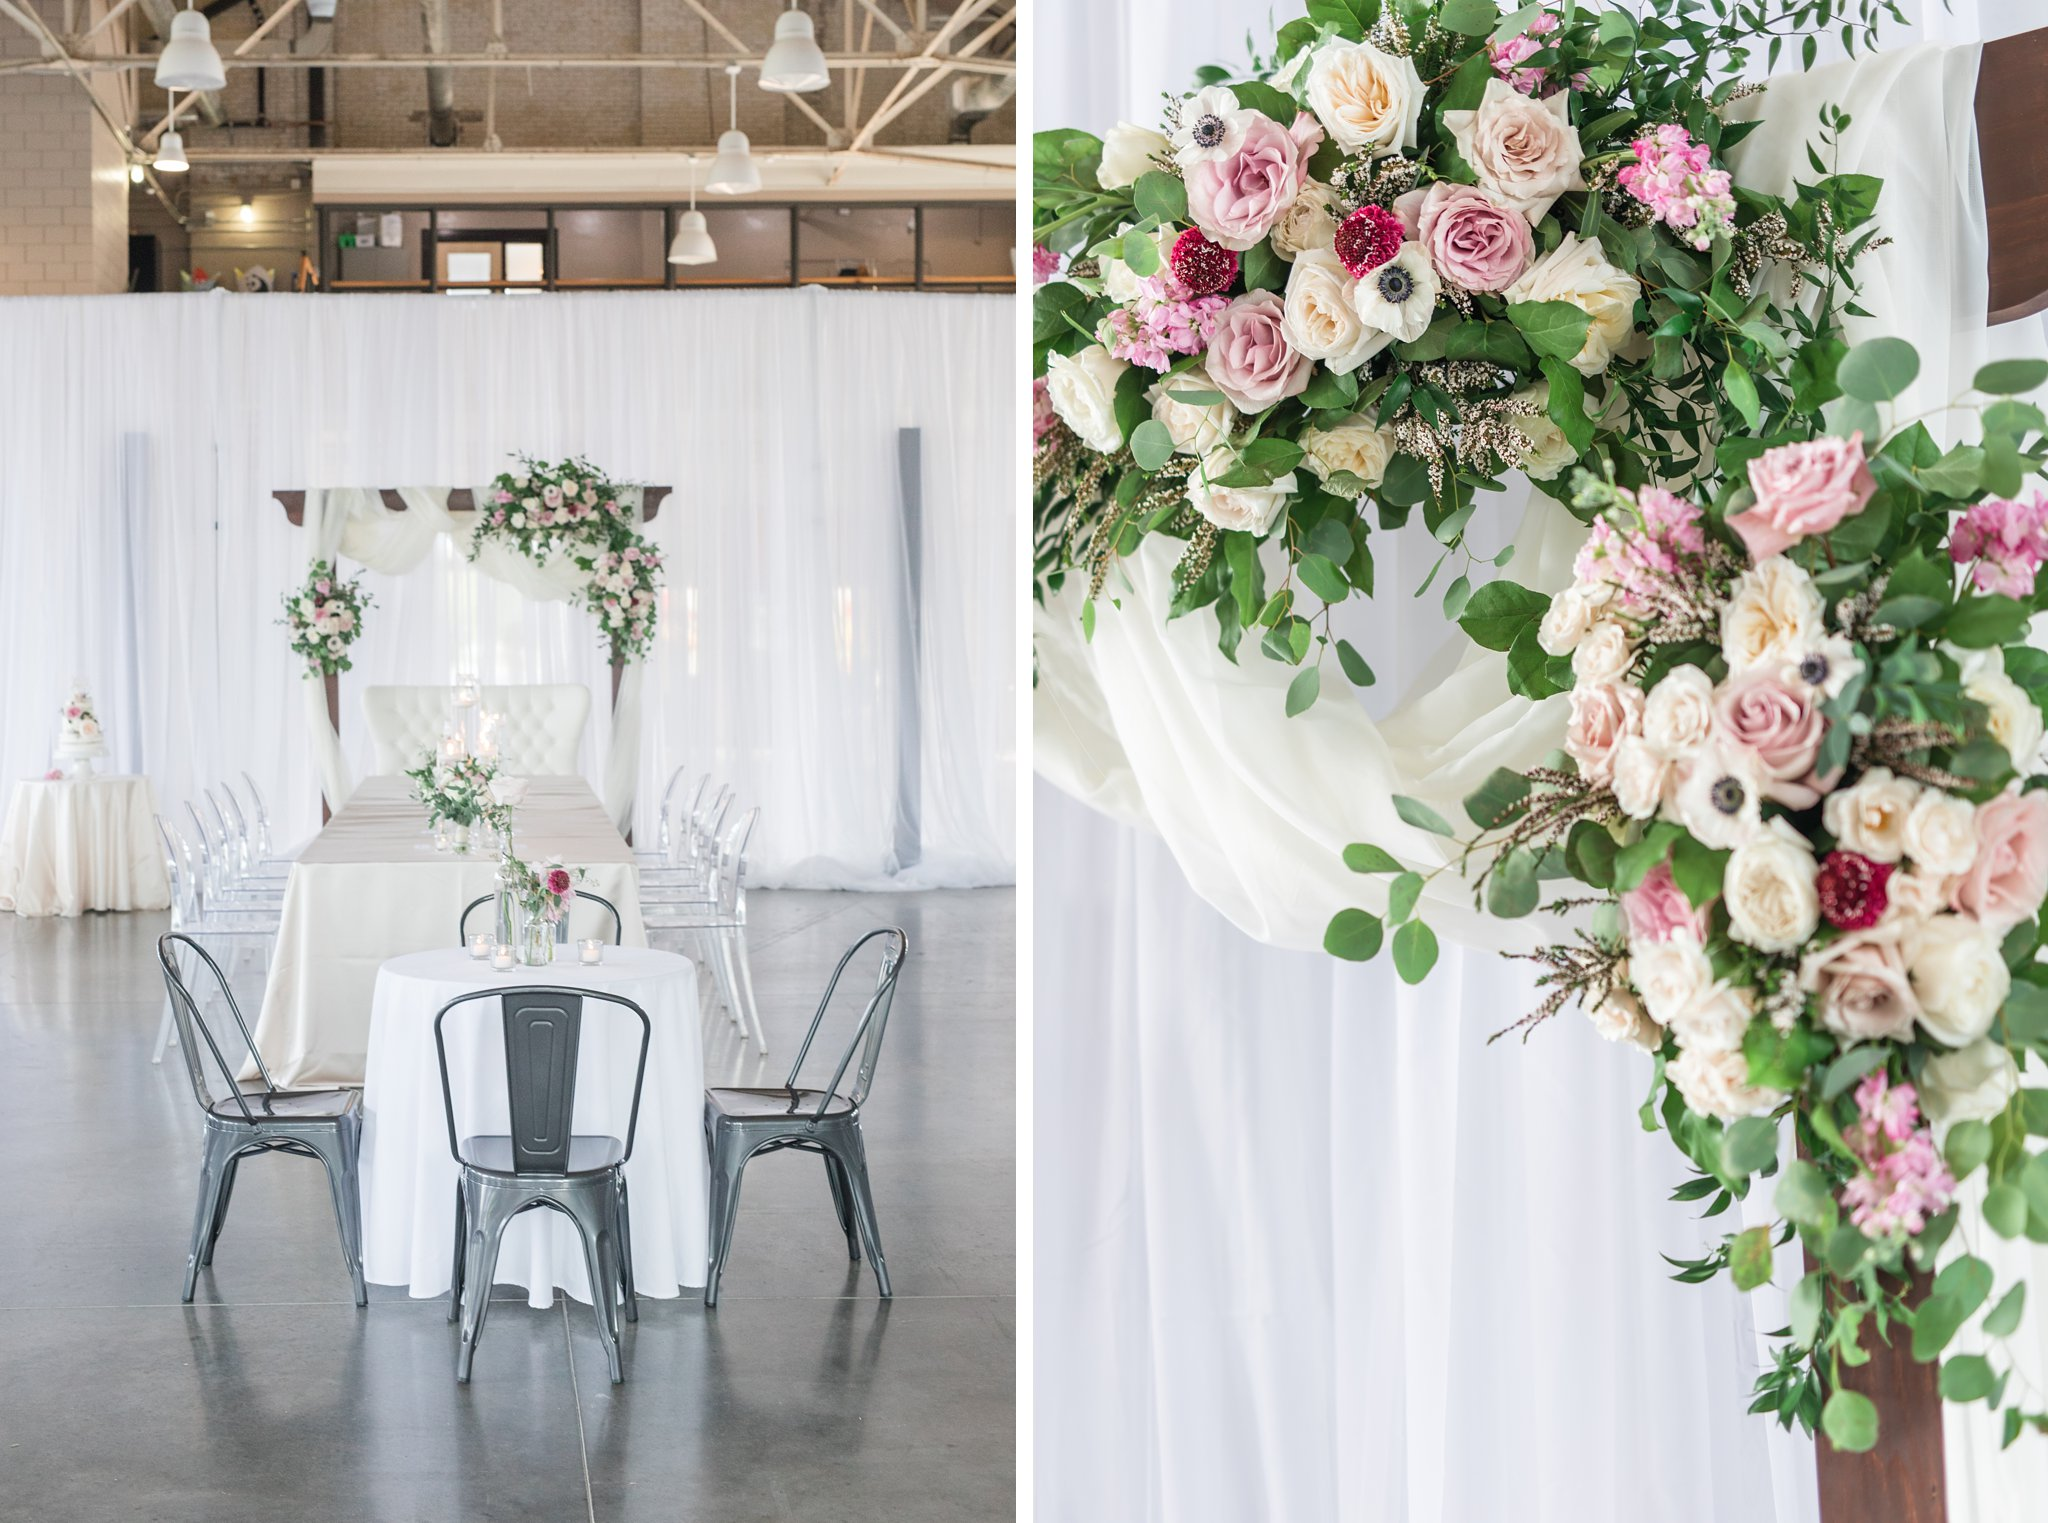 Modern industrial chairs Horticulture Building wedding at Lansdowne Amy Pinder Photography